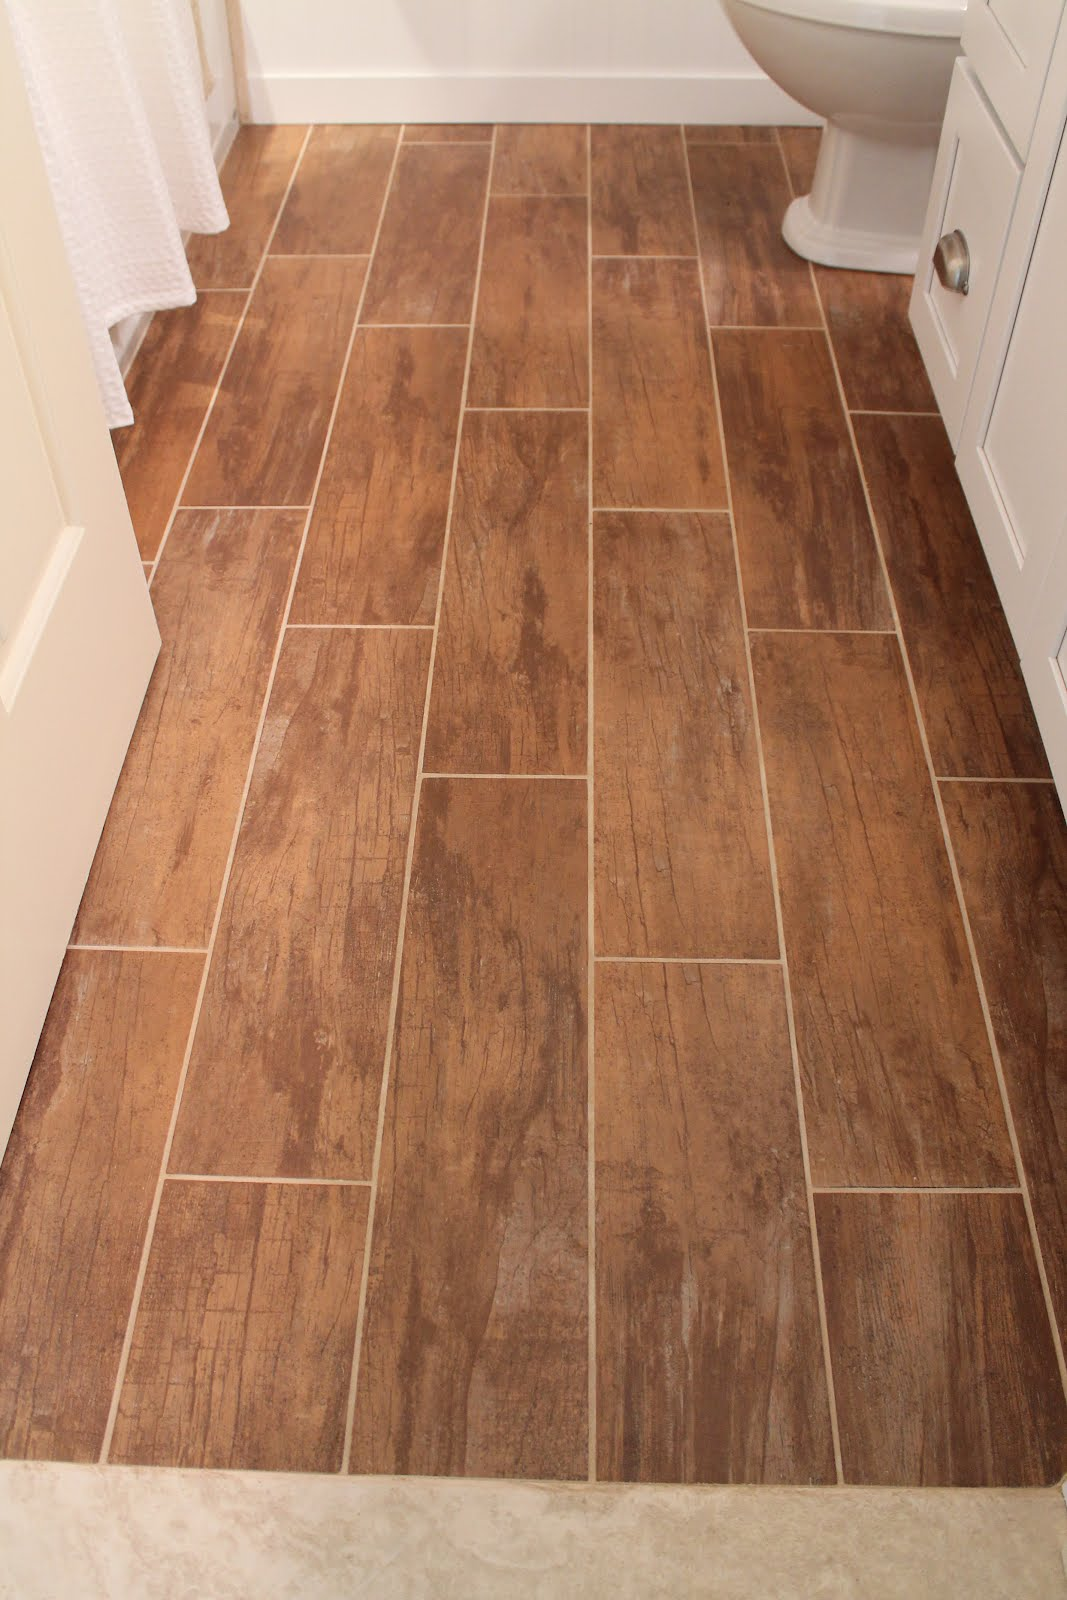 Remodelaholic bathroom renovation with wood grain tile and more Tile wood floor